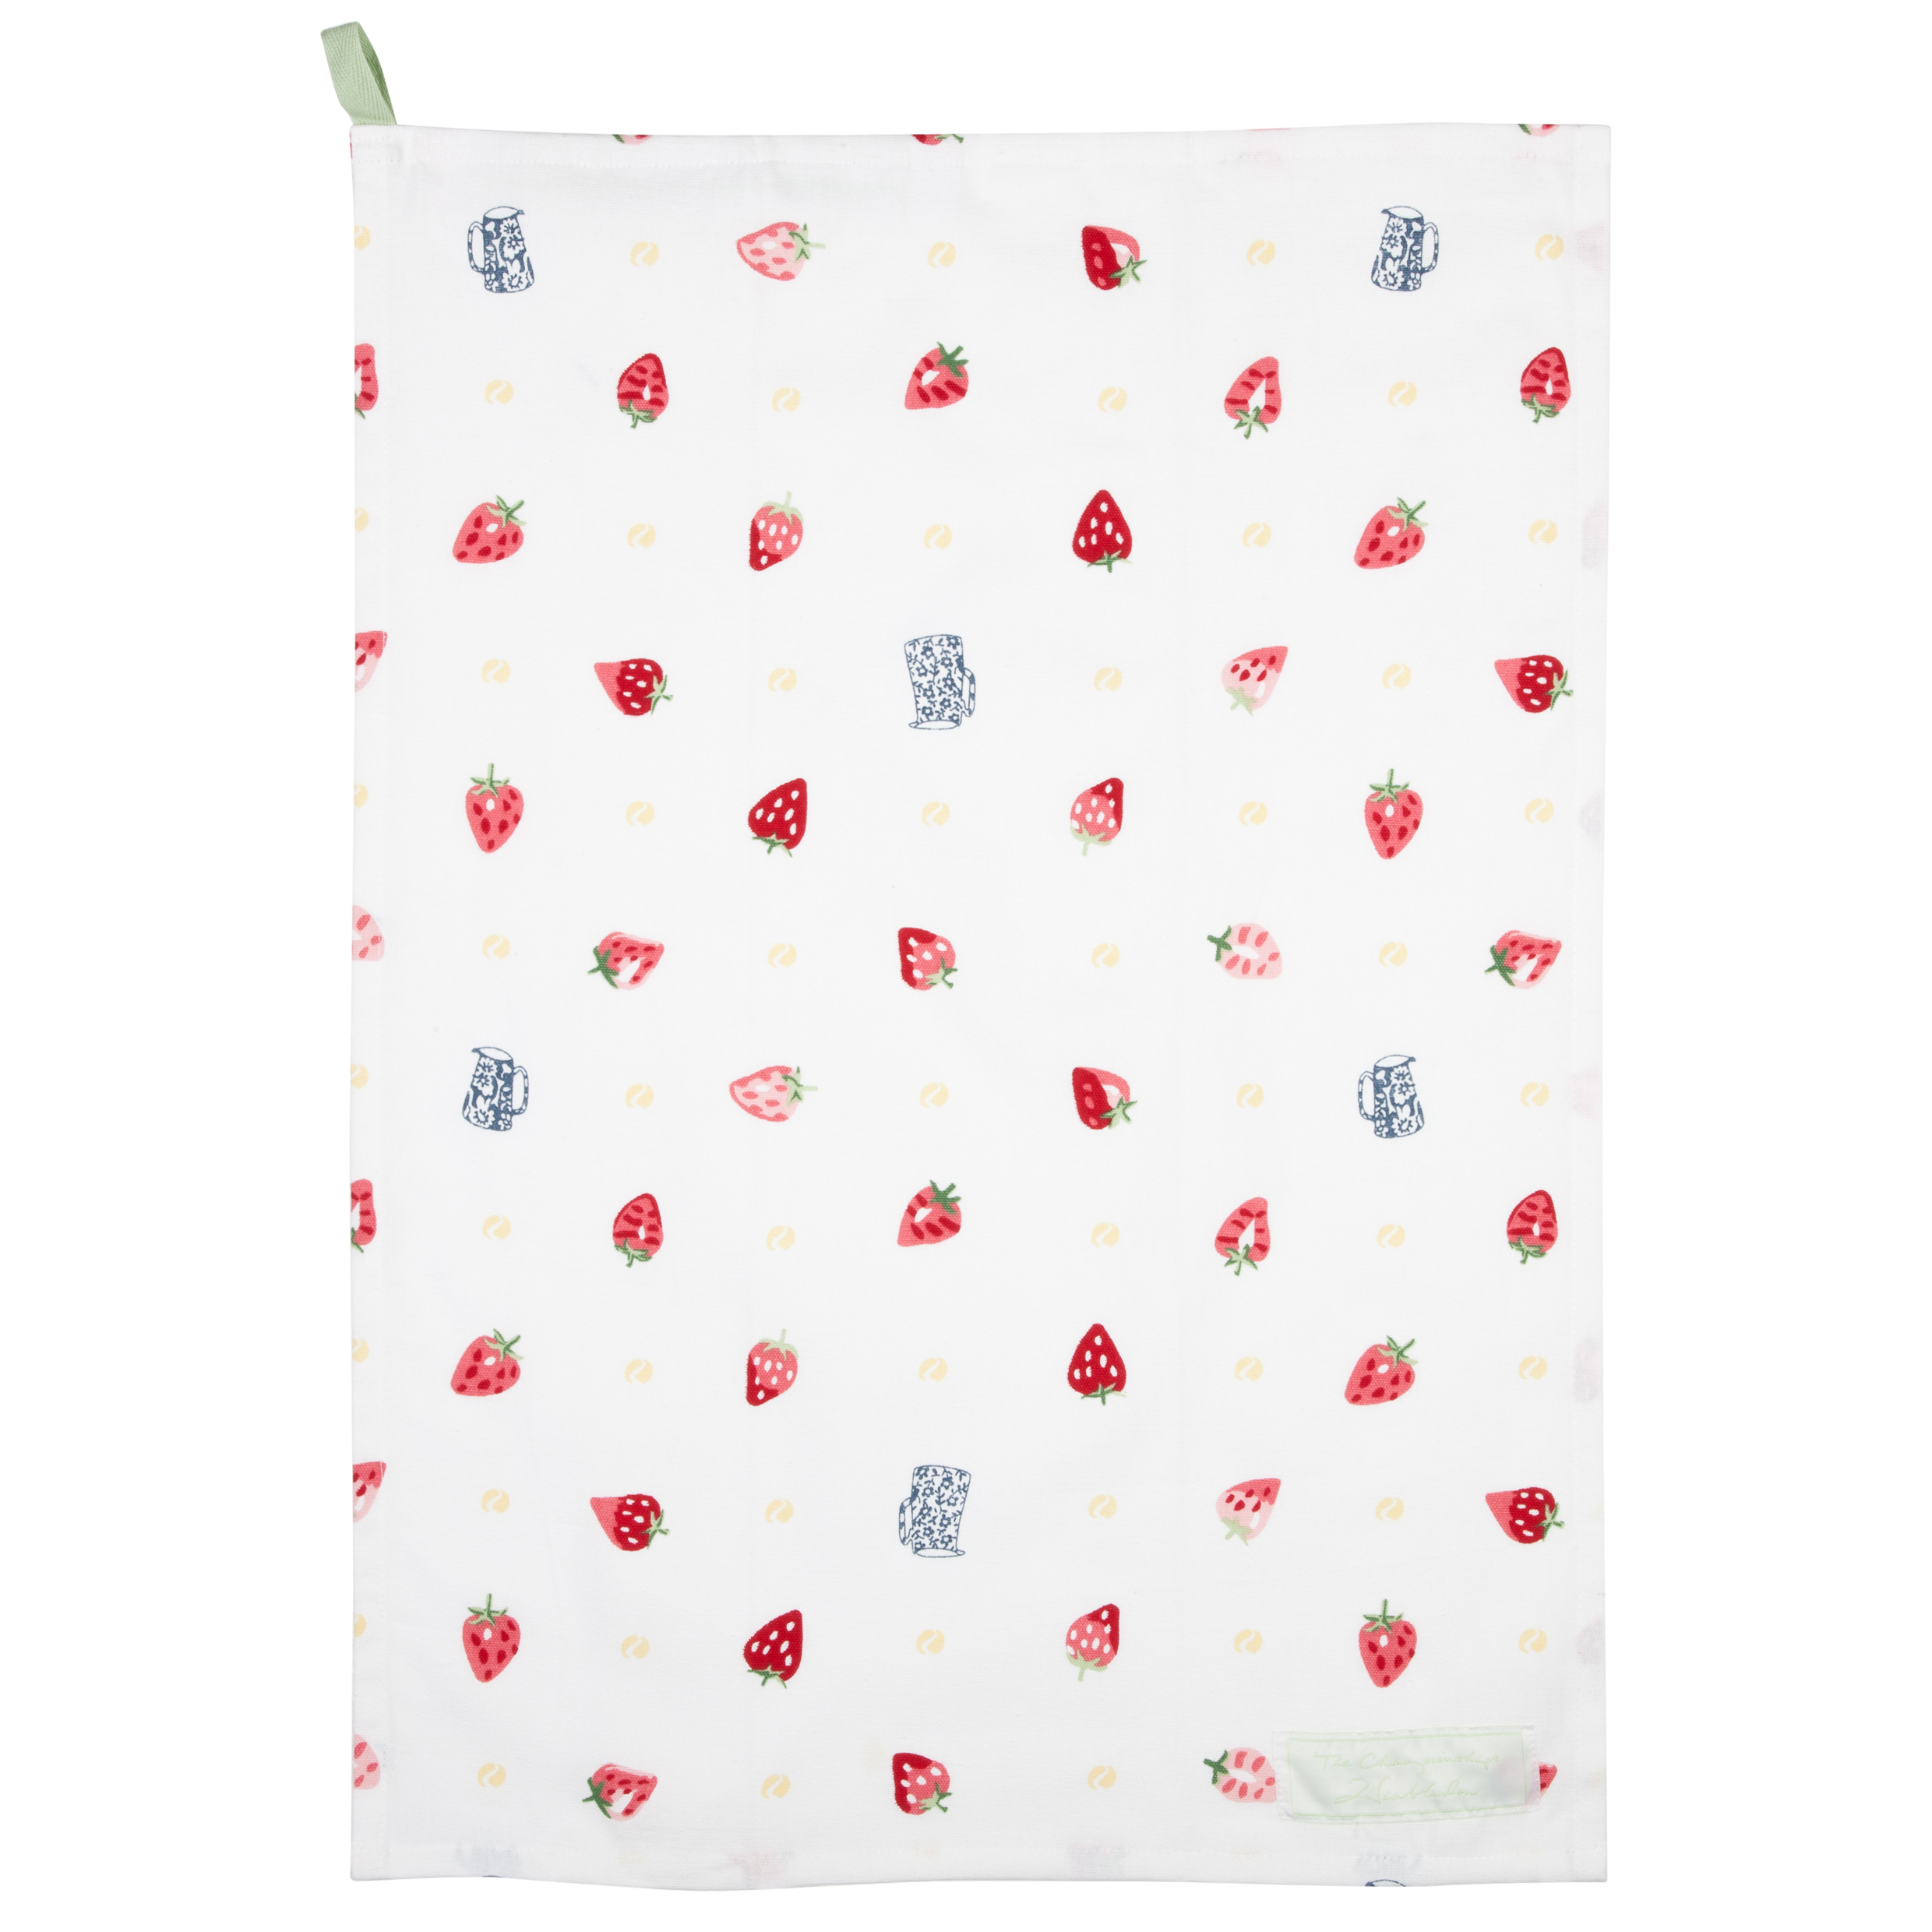 Wimbledon Strawberries and Cream Tea Towel - White